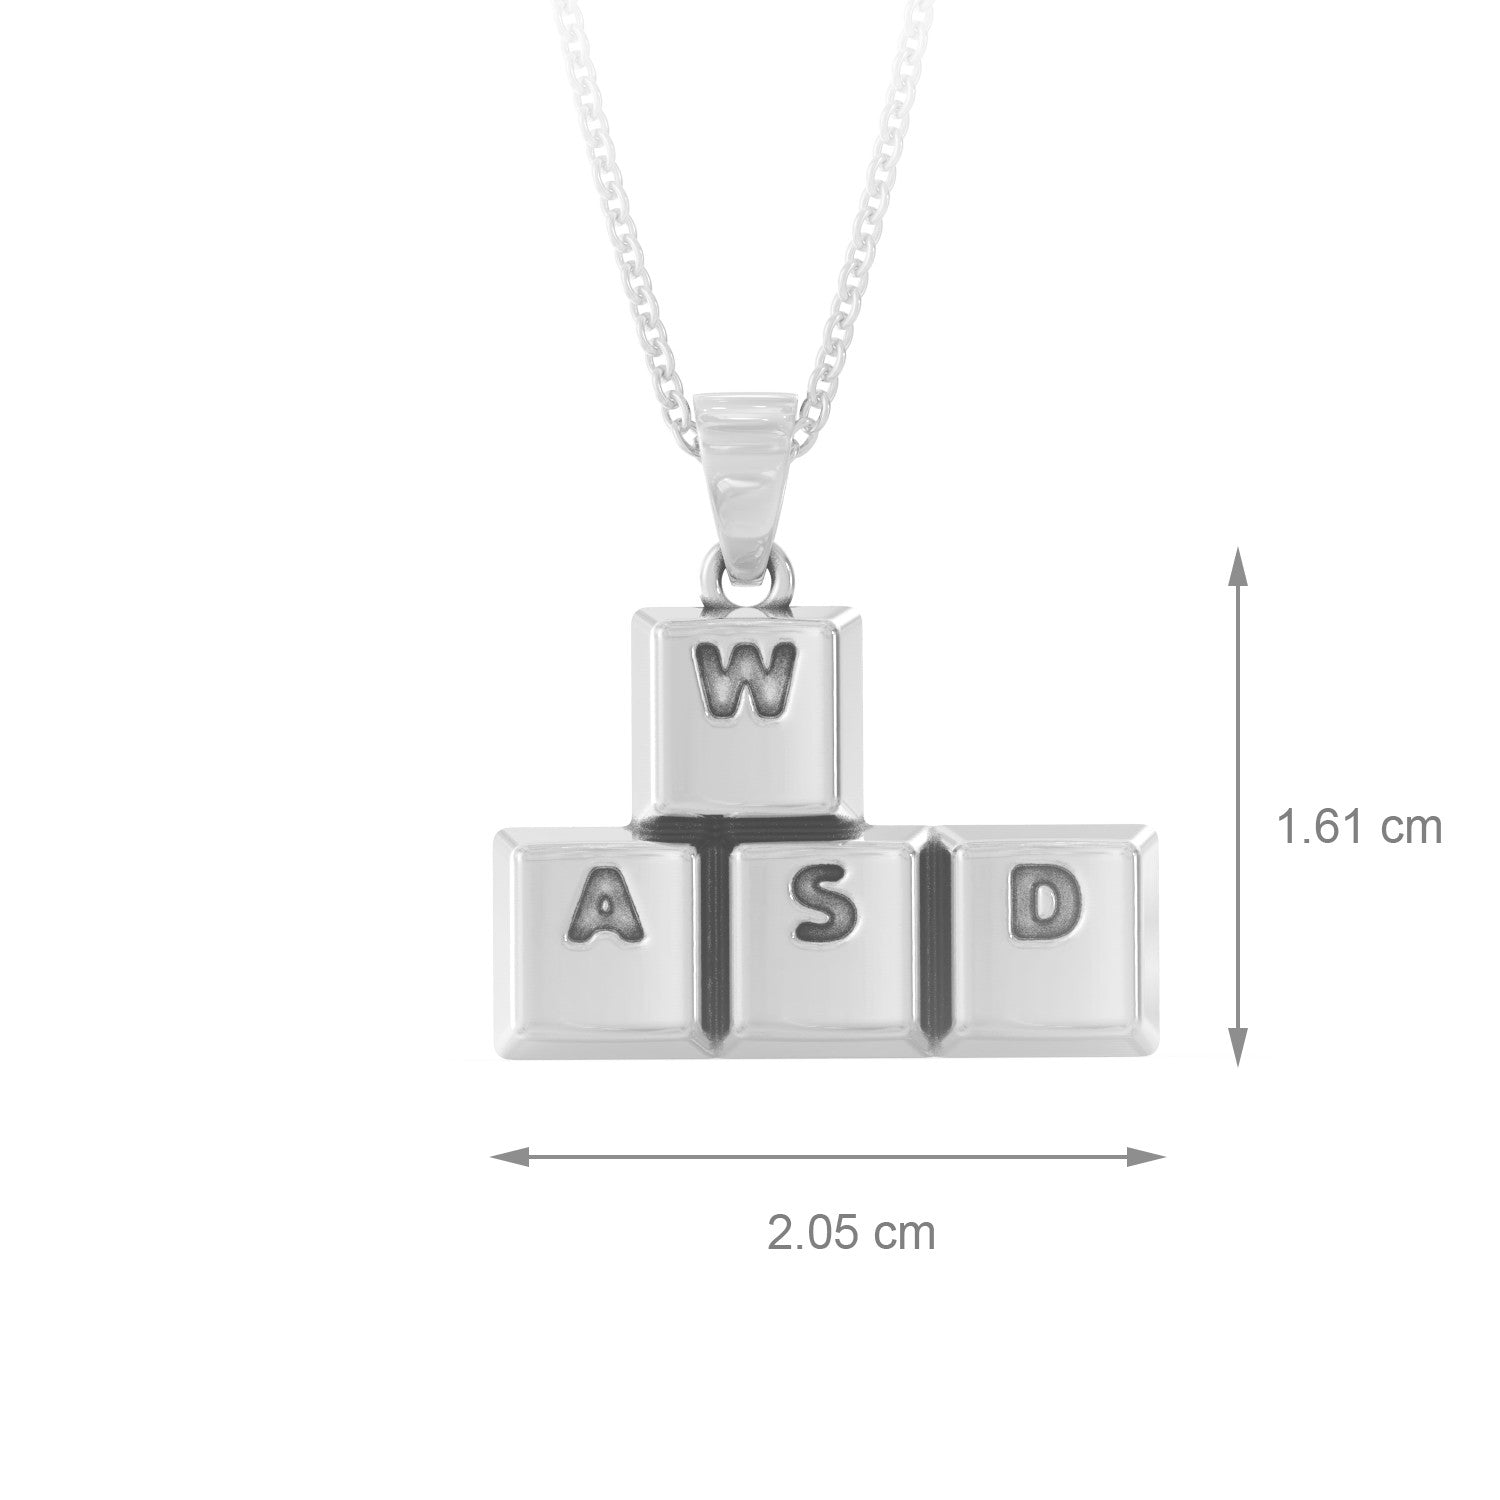 WASD - NECKLACE - Strictly Limited Edition